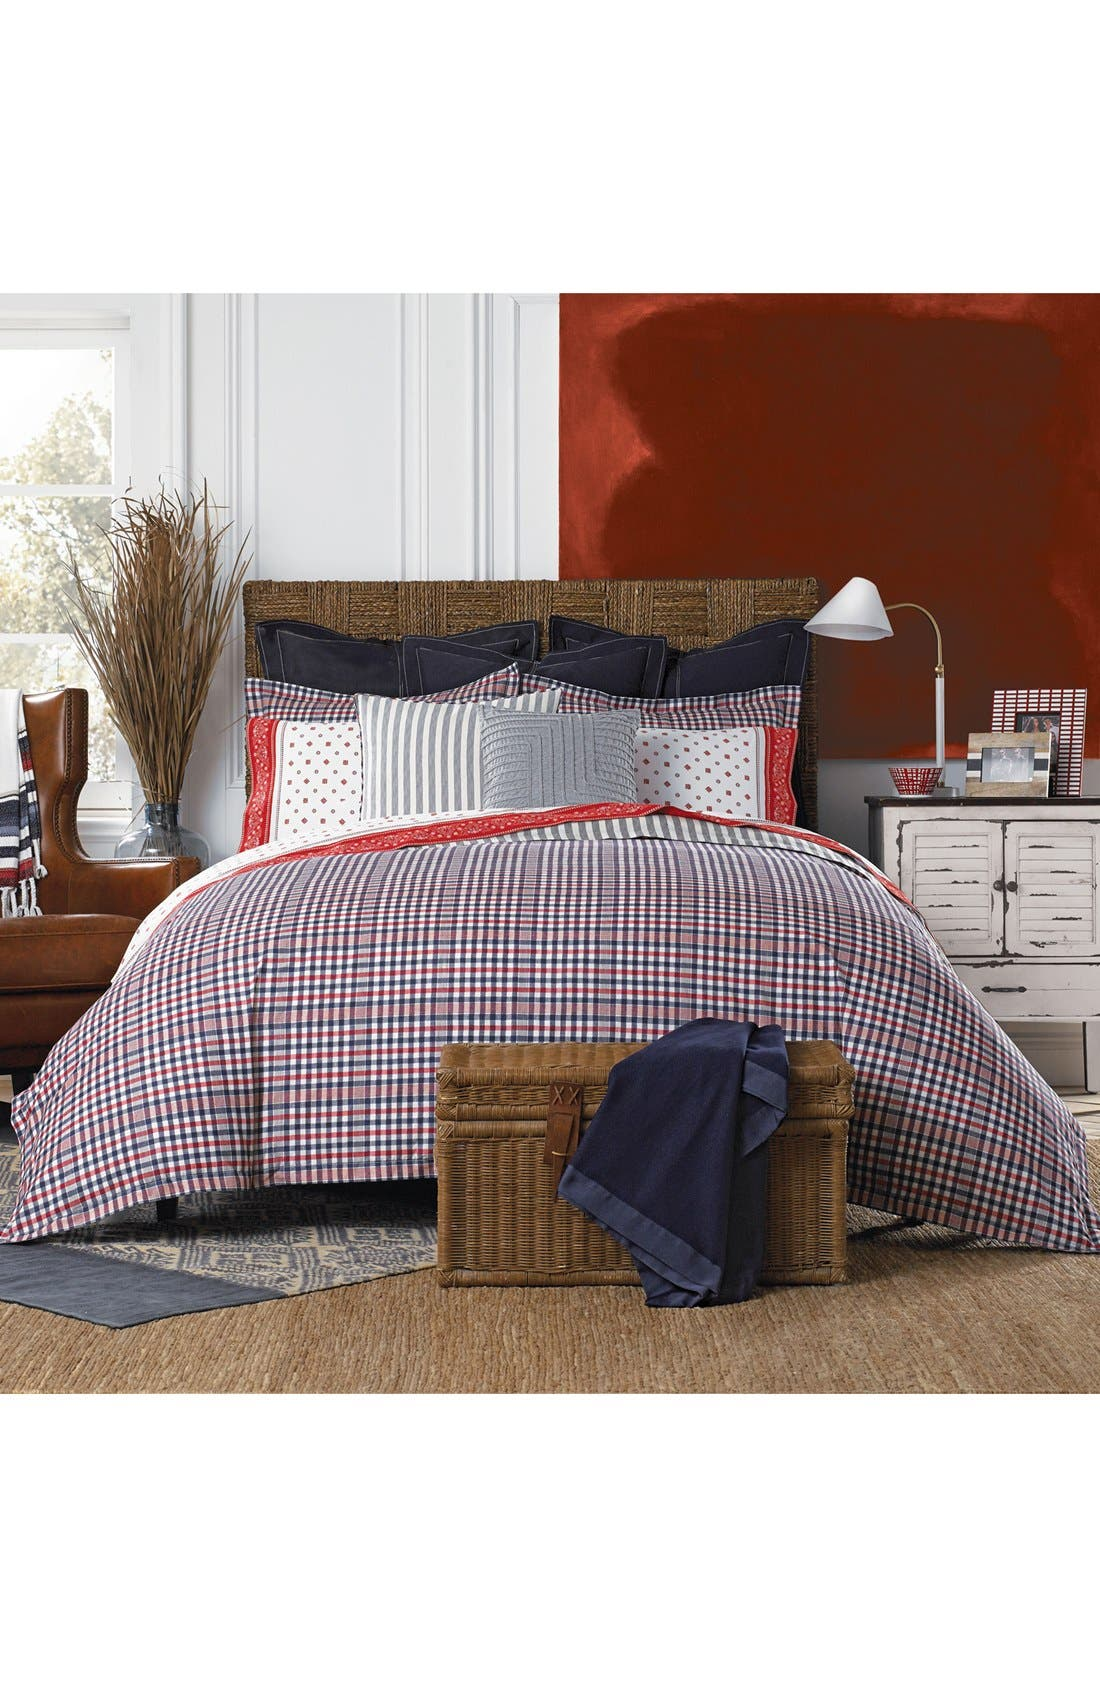 Tommy Hilfiger Plaid Comforter & Sham Set